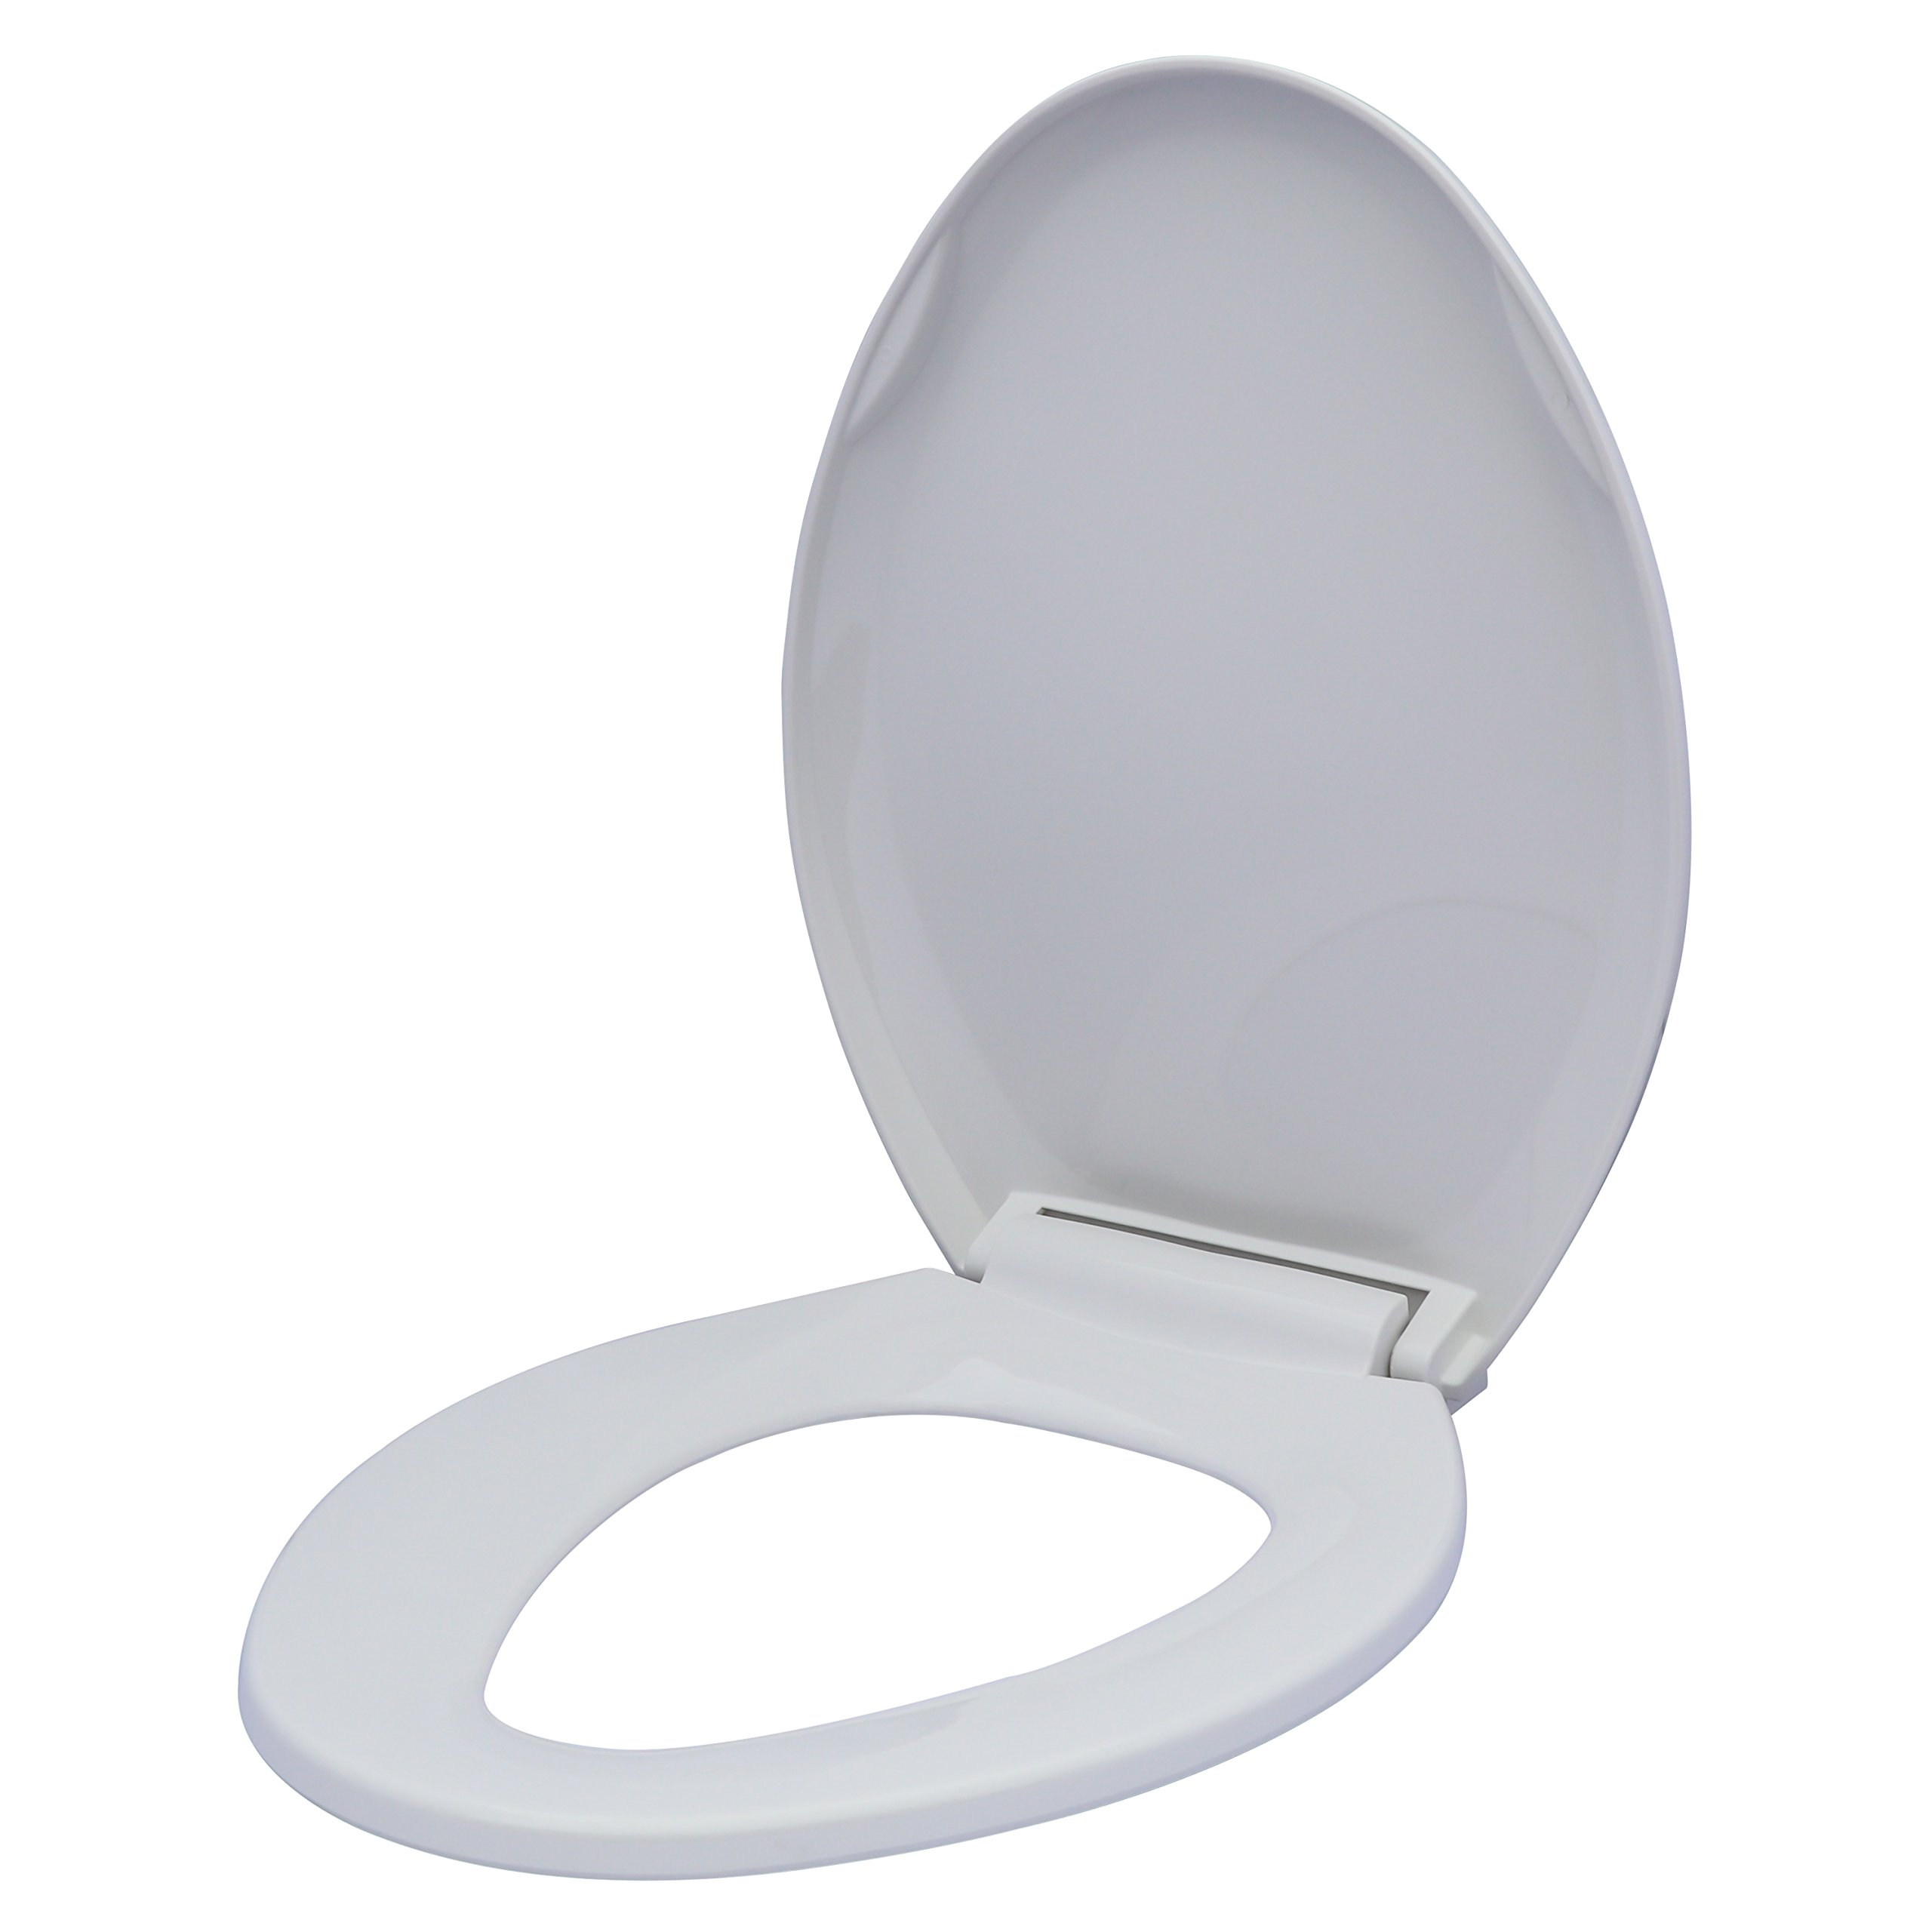 Karlson KS1241-1906-WH Slow Close Plastic Elongated Toilet Seat with Easy Clean Hinges White